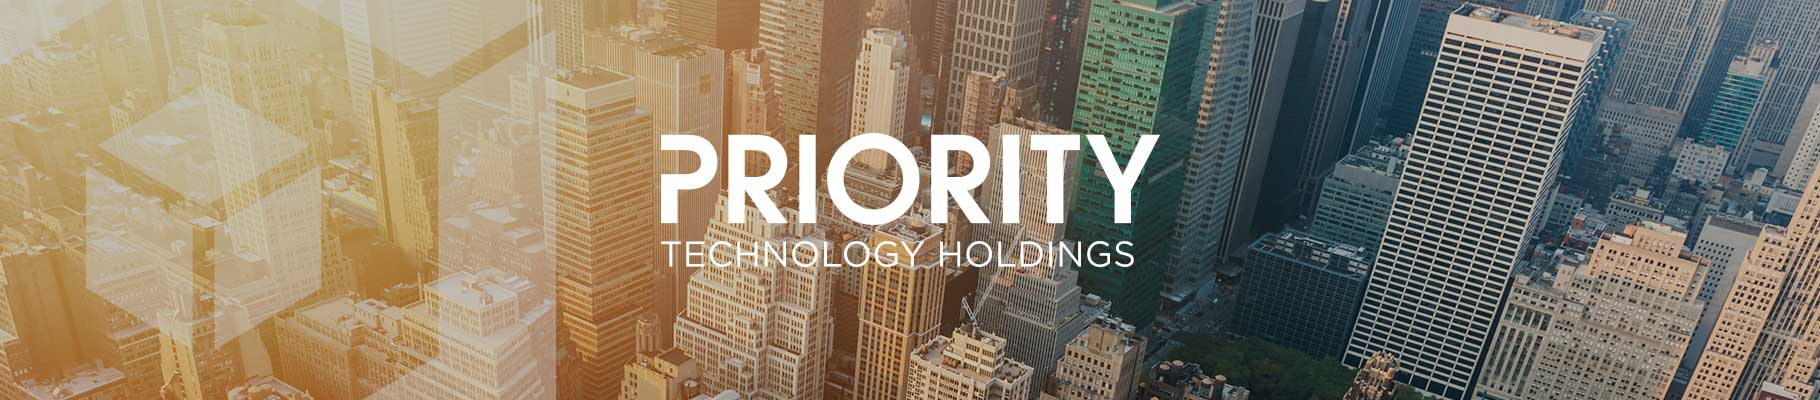 Priority Technology Holdings graphic banner with a background cityscape